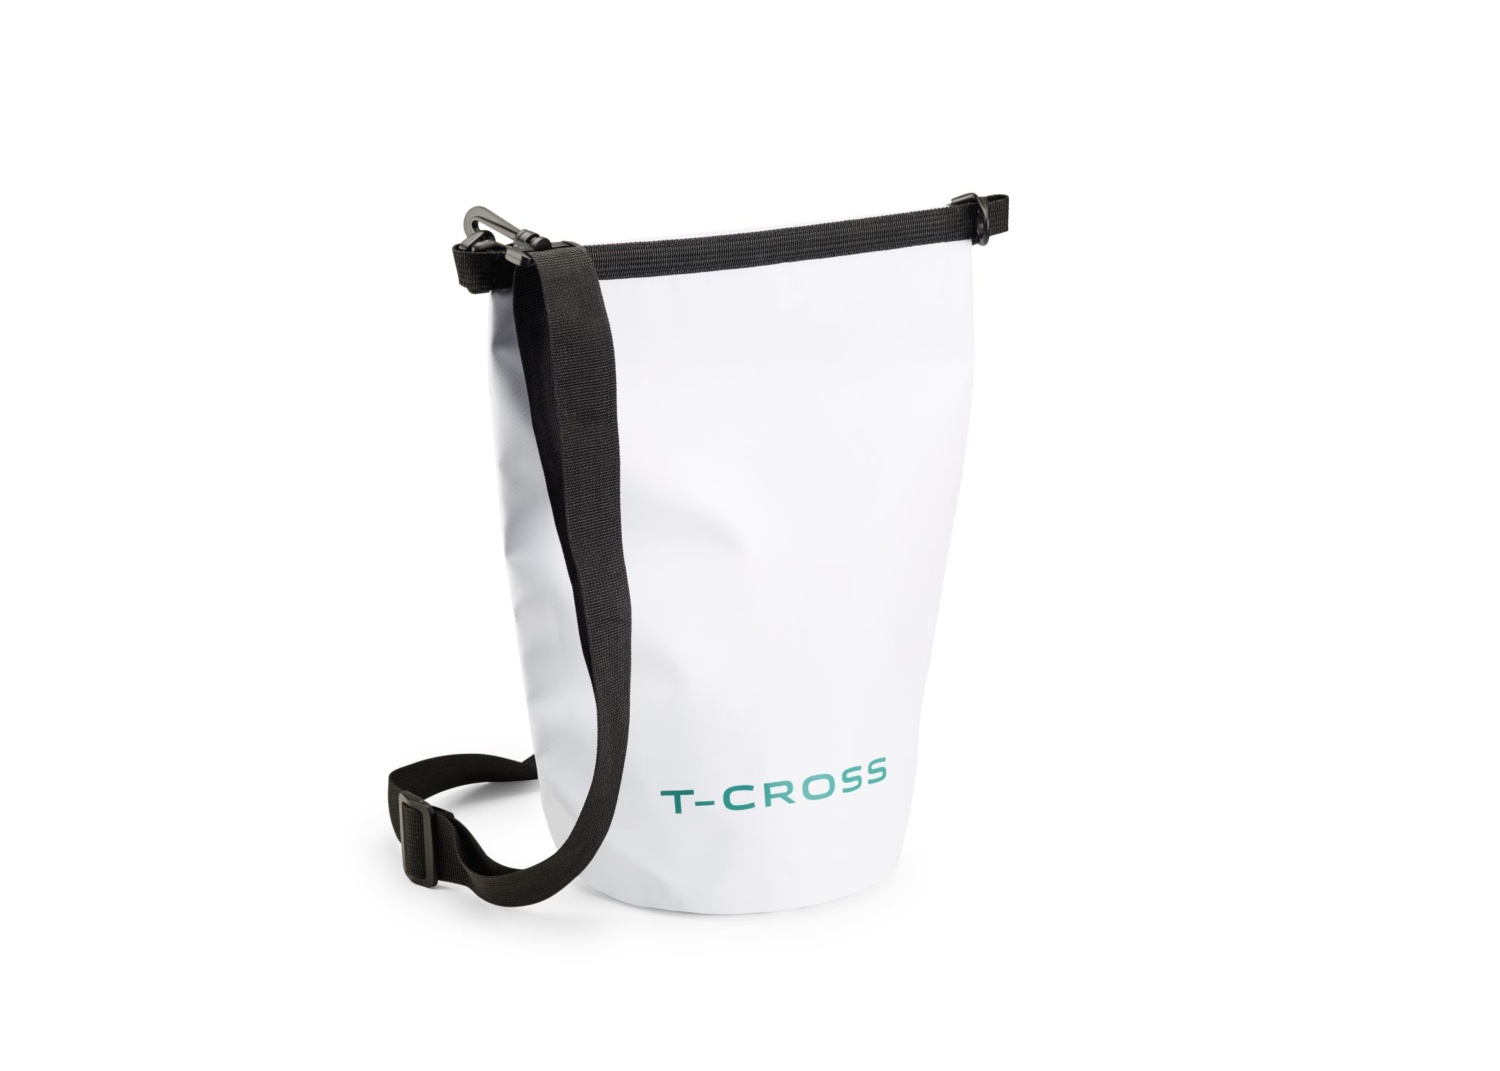 Bolsa outdoors, colección T-Cross